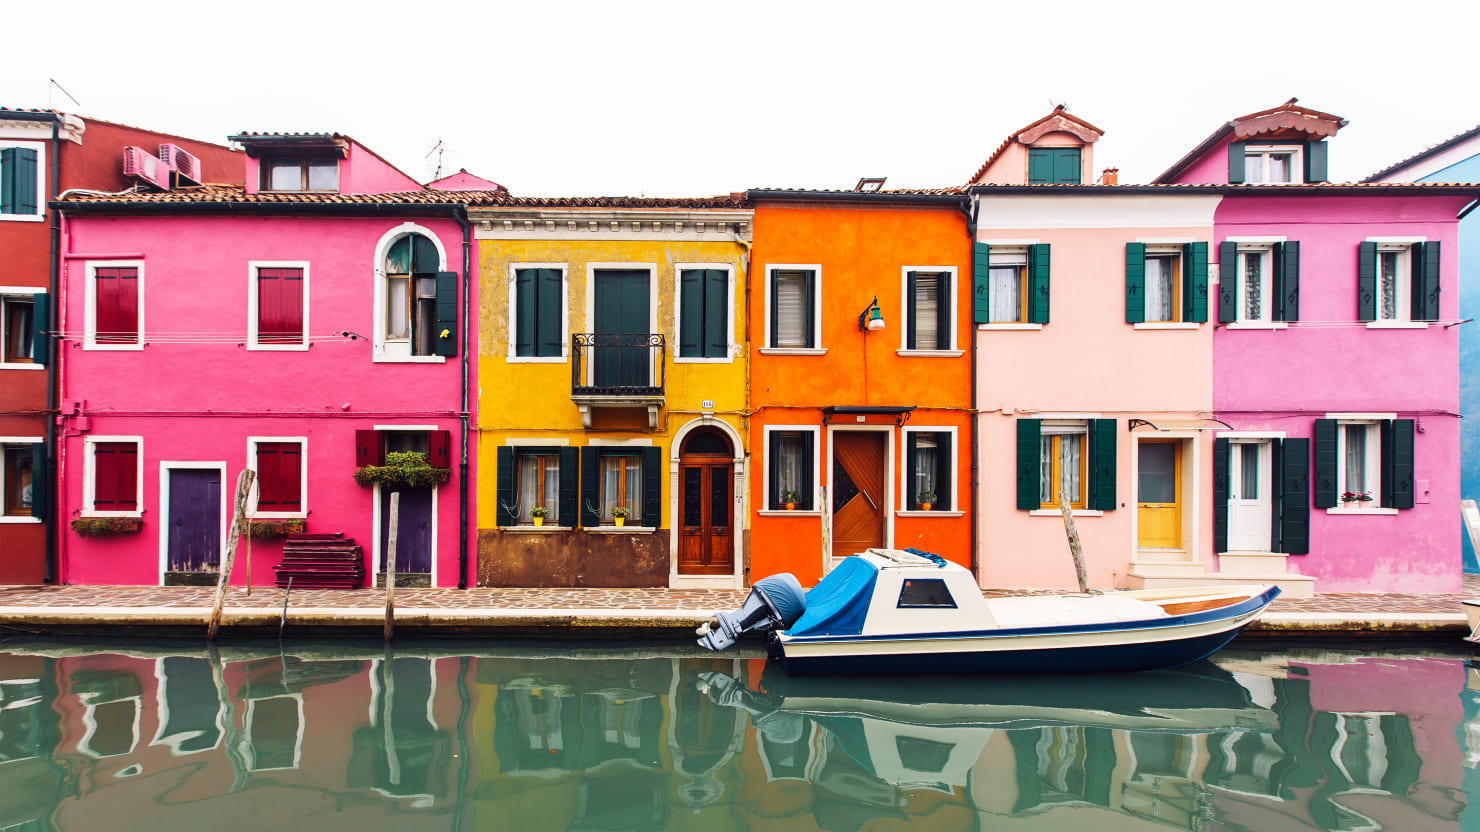 Italy's Tourism Bust Leads to Real Estate Boom